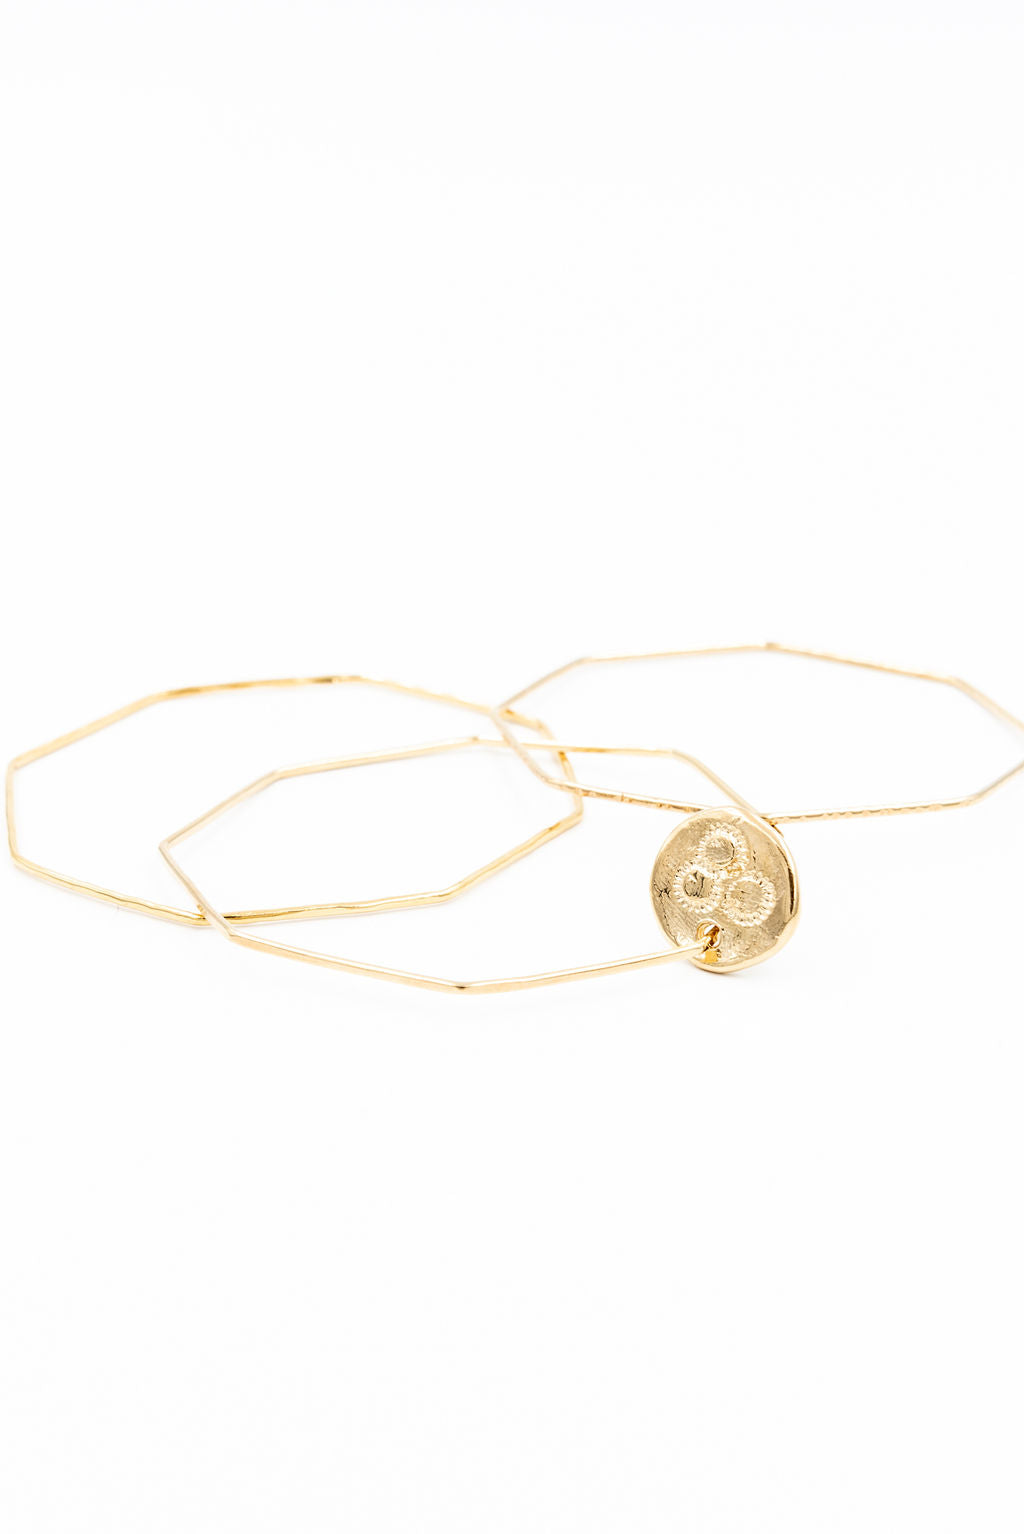 14k gold plated octagonal bangles, gold bangle bracelets, bangle charm bracelet, coin jewelry